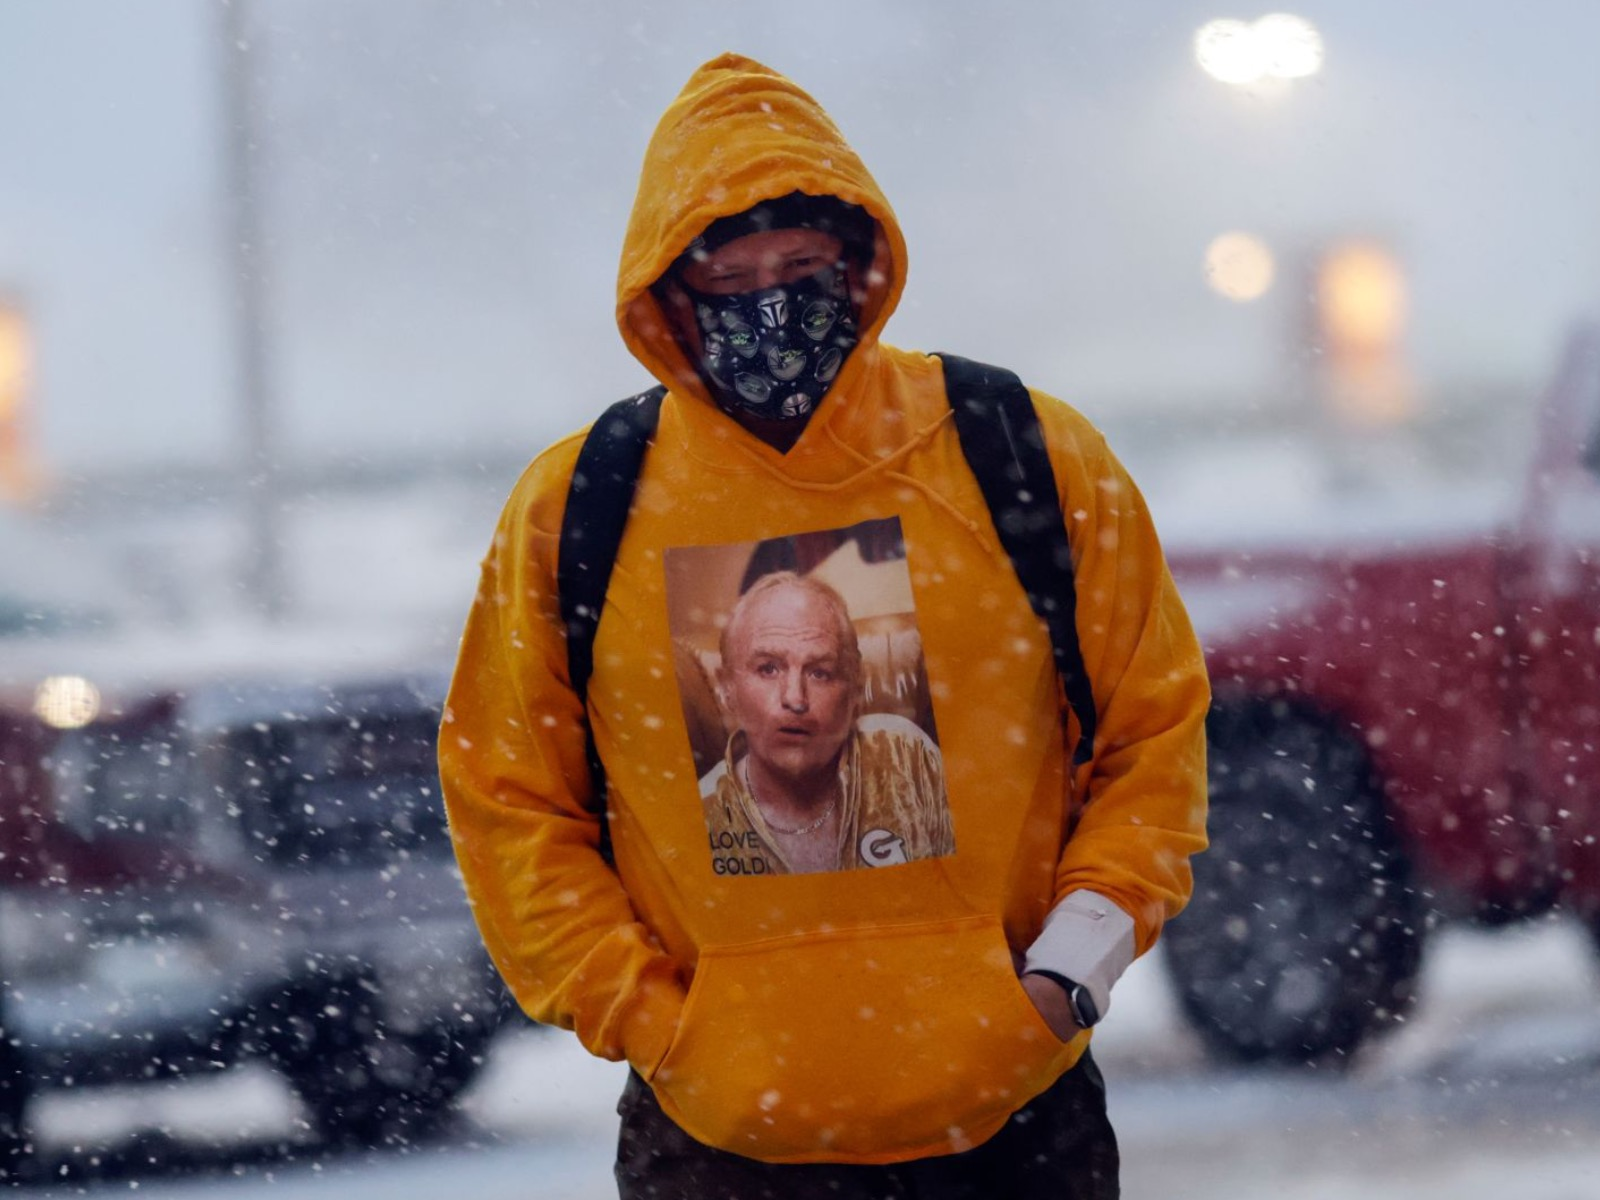 Goldmember sweater in snow